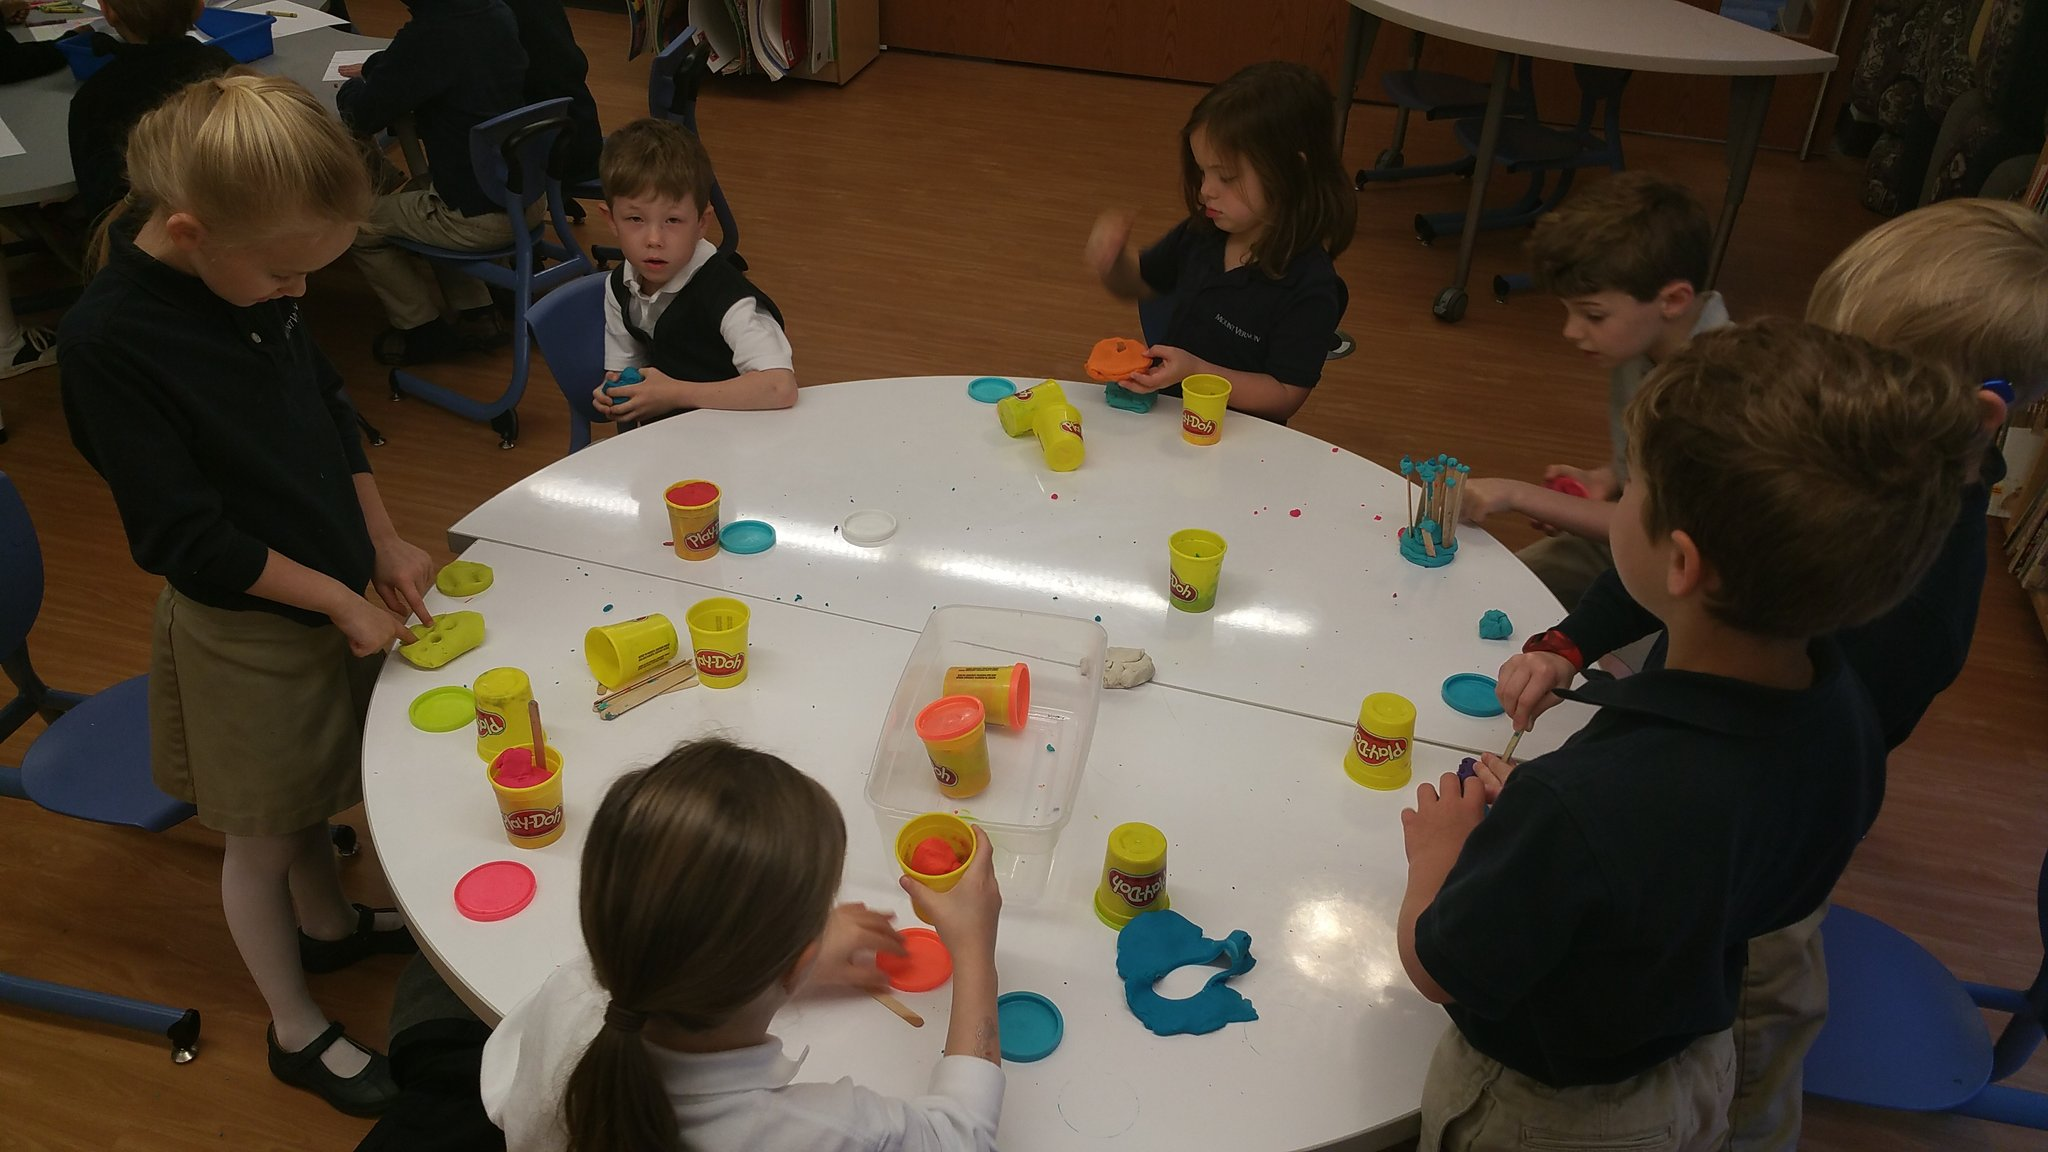 """The candy shoppe is closing!"" #kidquote (Confession: I love the smell of @PlayDoh!) #kinderchat #MVPSchool #learningwalk https://t.co/OQVSIgbLTx"